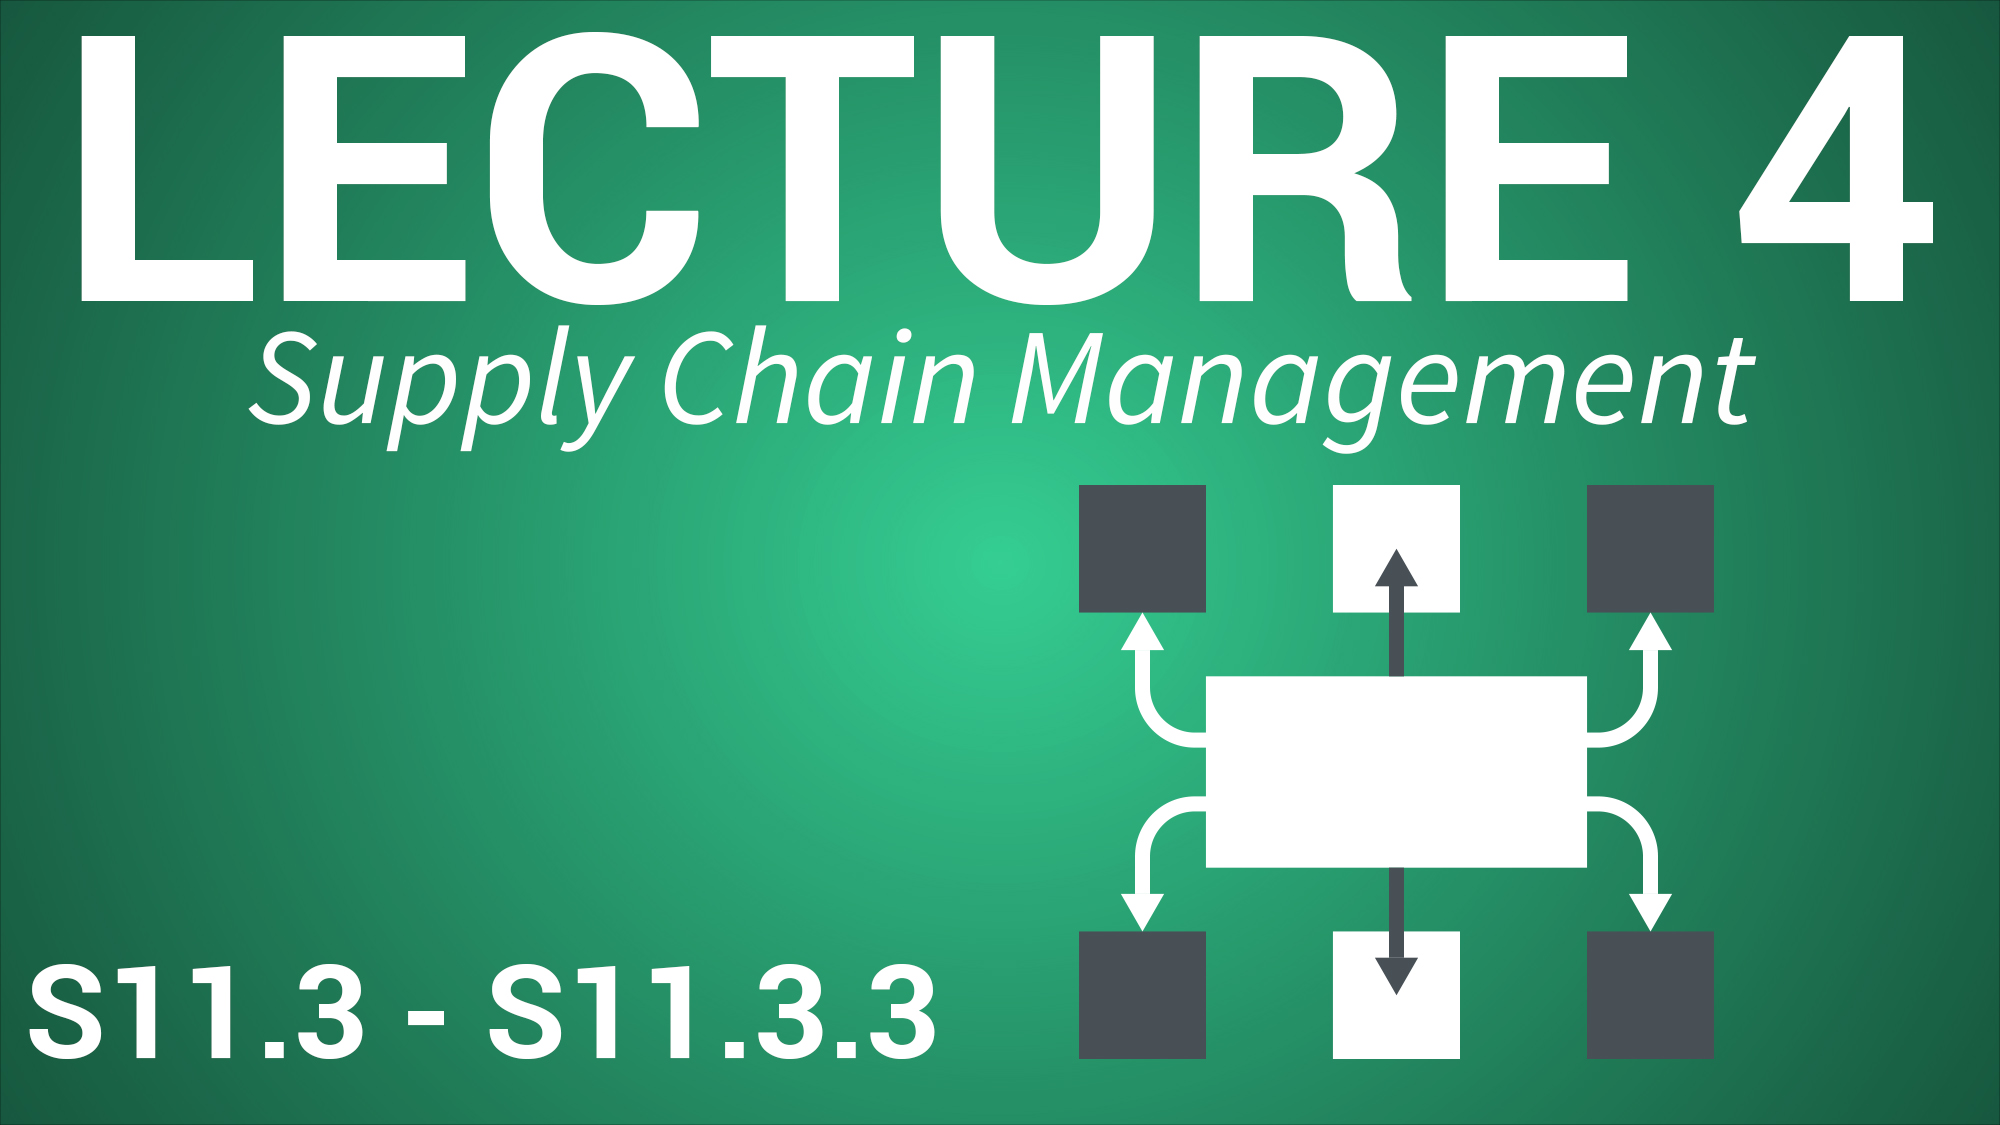 Operations Management 2 - Process Mapping & Supply Chain - Lecture 4: Supply Chain Management